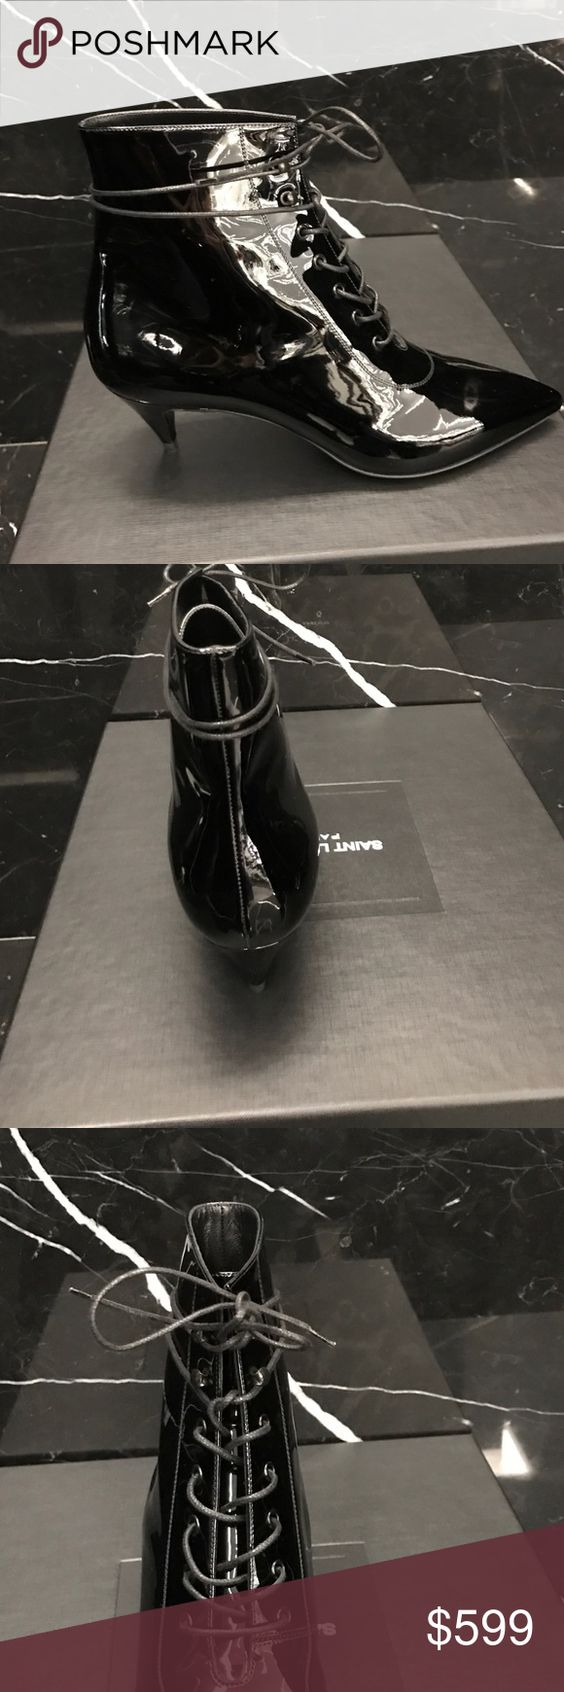 """Brand New YSL Cat 50 Boots Brand New YSL Patent Leather Cat 50 Boots.  Kitten Heel Lace up. 2"""" Heel. Style 351930. Made in Italy. Comes with box and dustbag. Ships out same day or next day depending in time of purchase. Yves Saint Laurent Shoes Ankle Boots & Booties"""